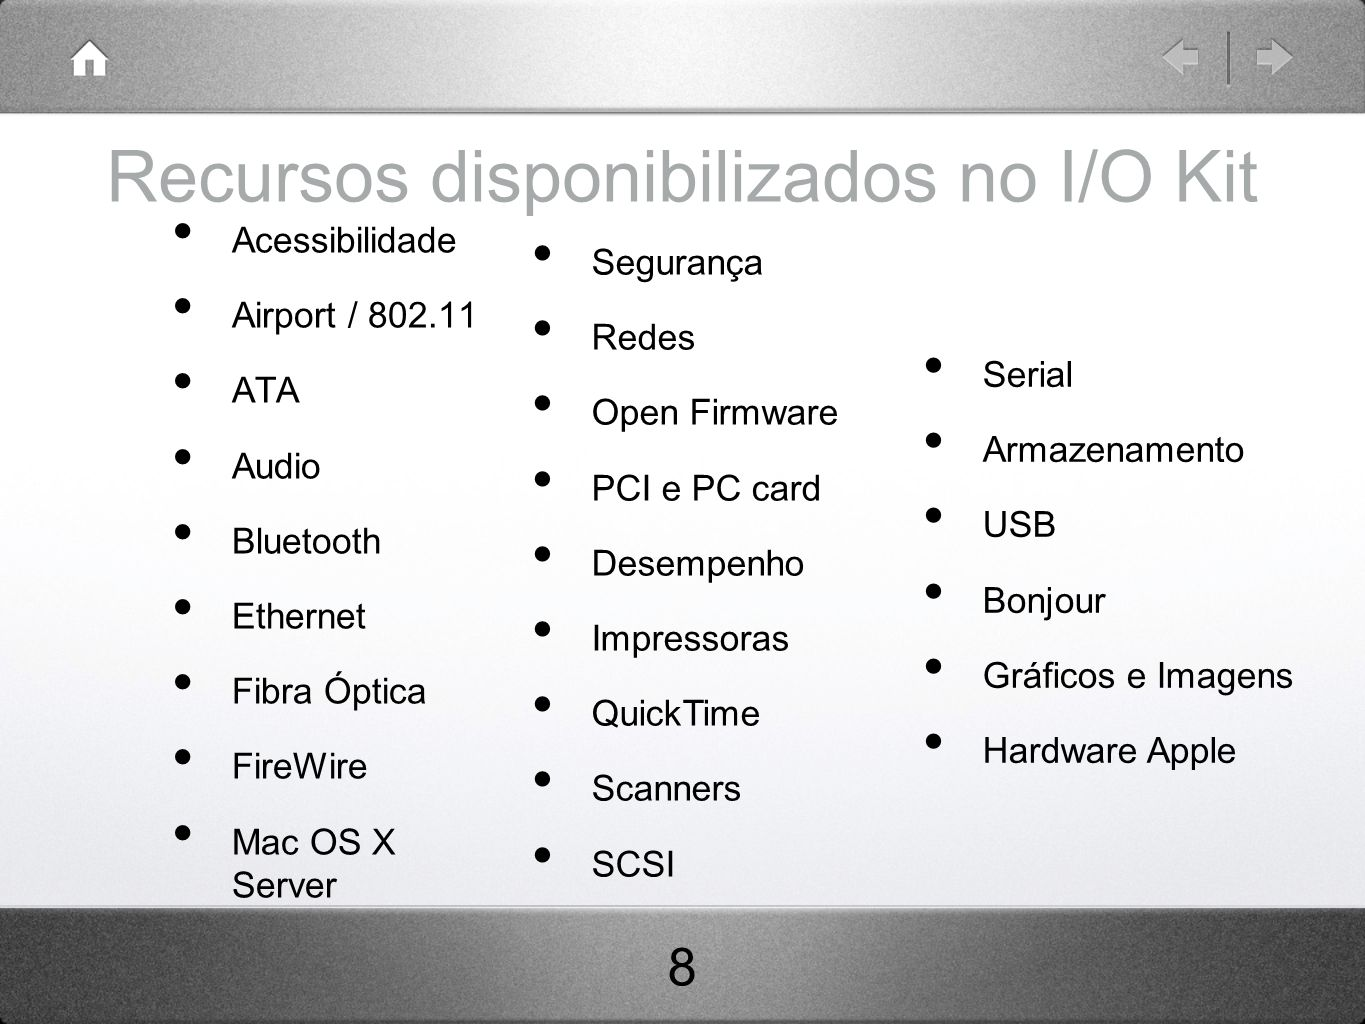 Recursos disponibilizados no I/O Kit Acessibilidade Airport / 802.11 ATA Audio Bluetooth Ethernet Fibra Óptica FireWire Mac OS X Server Segurança Rede